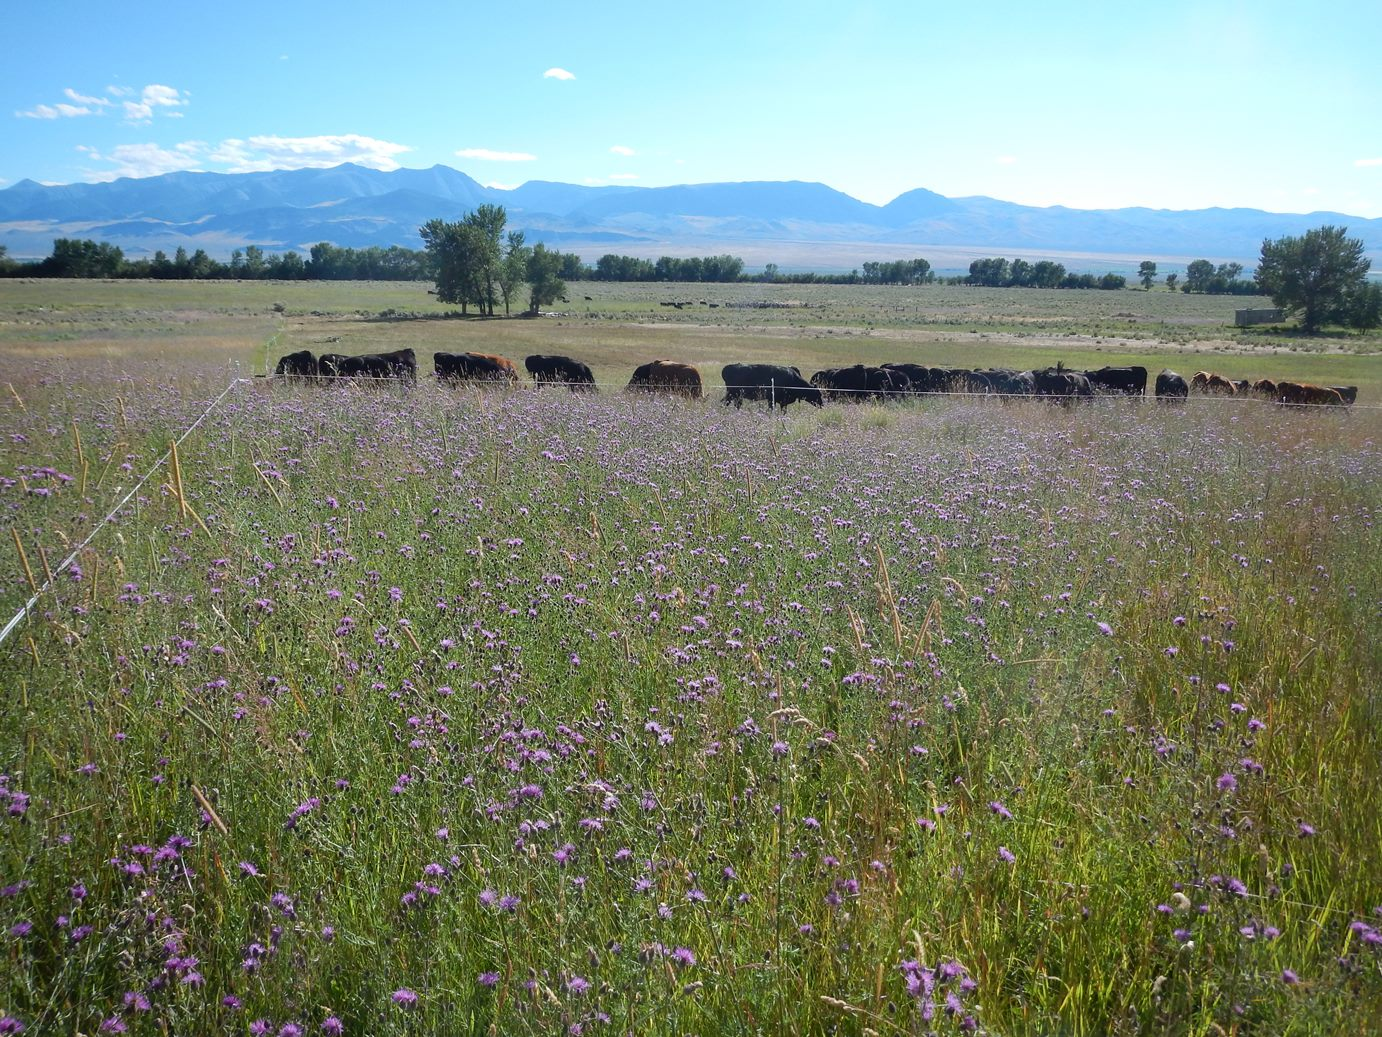 High Density Grazing For Spotted Knapweed Suppression On Pasture